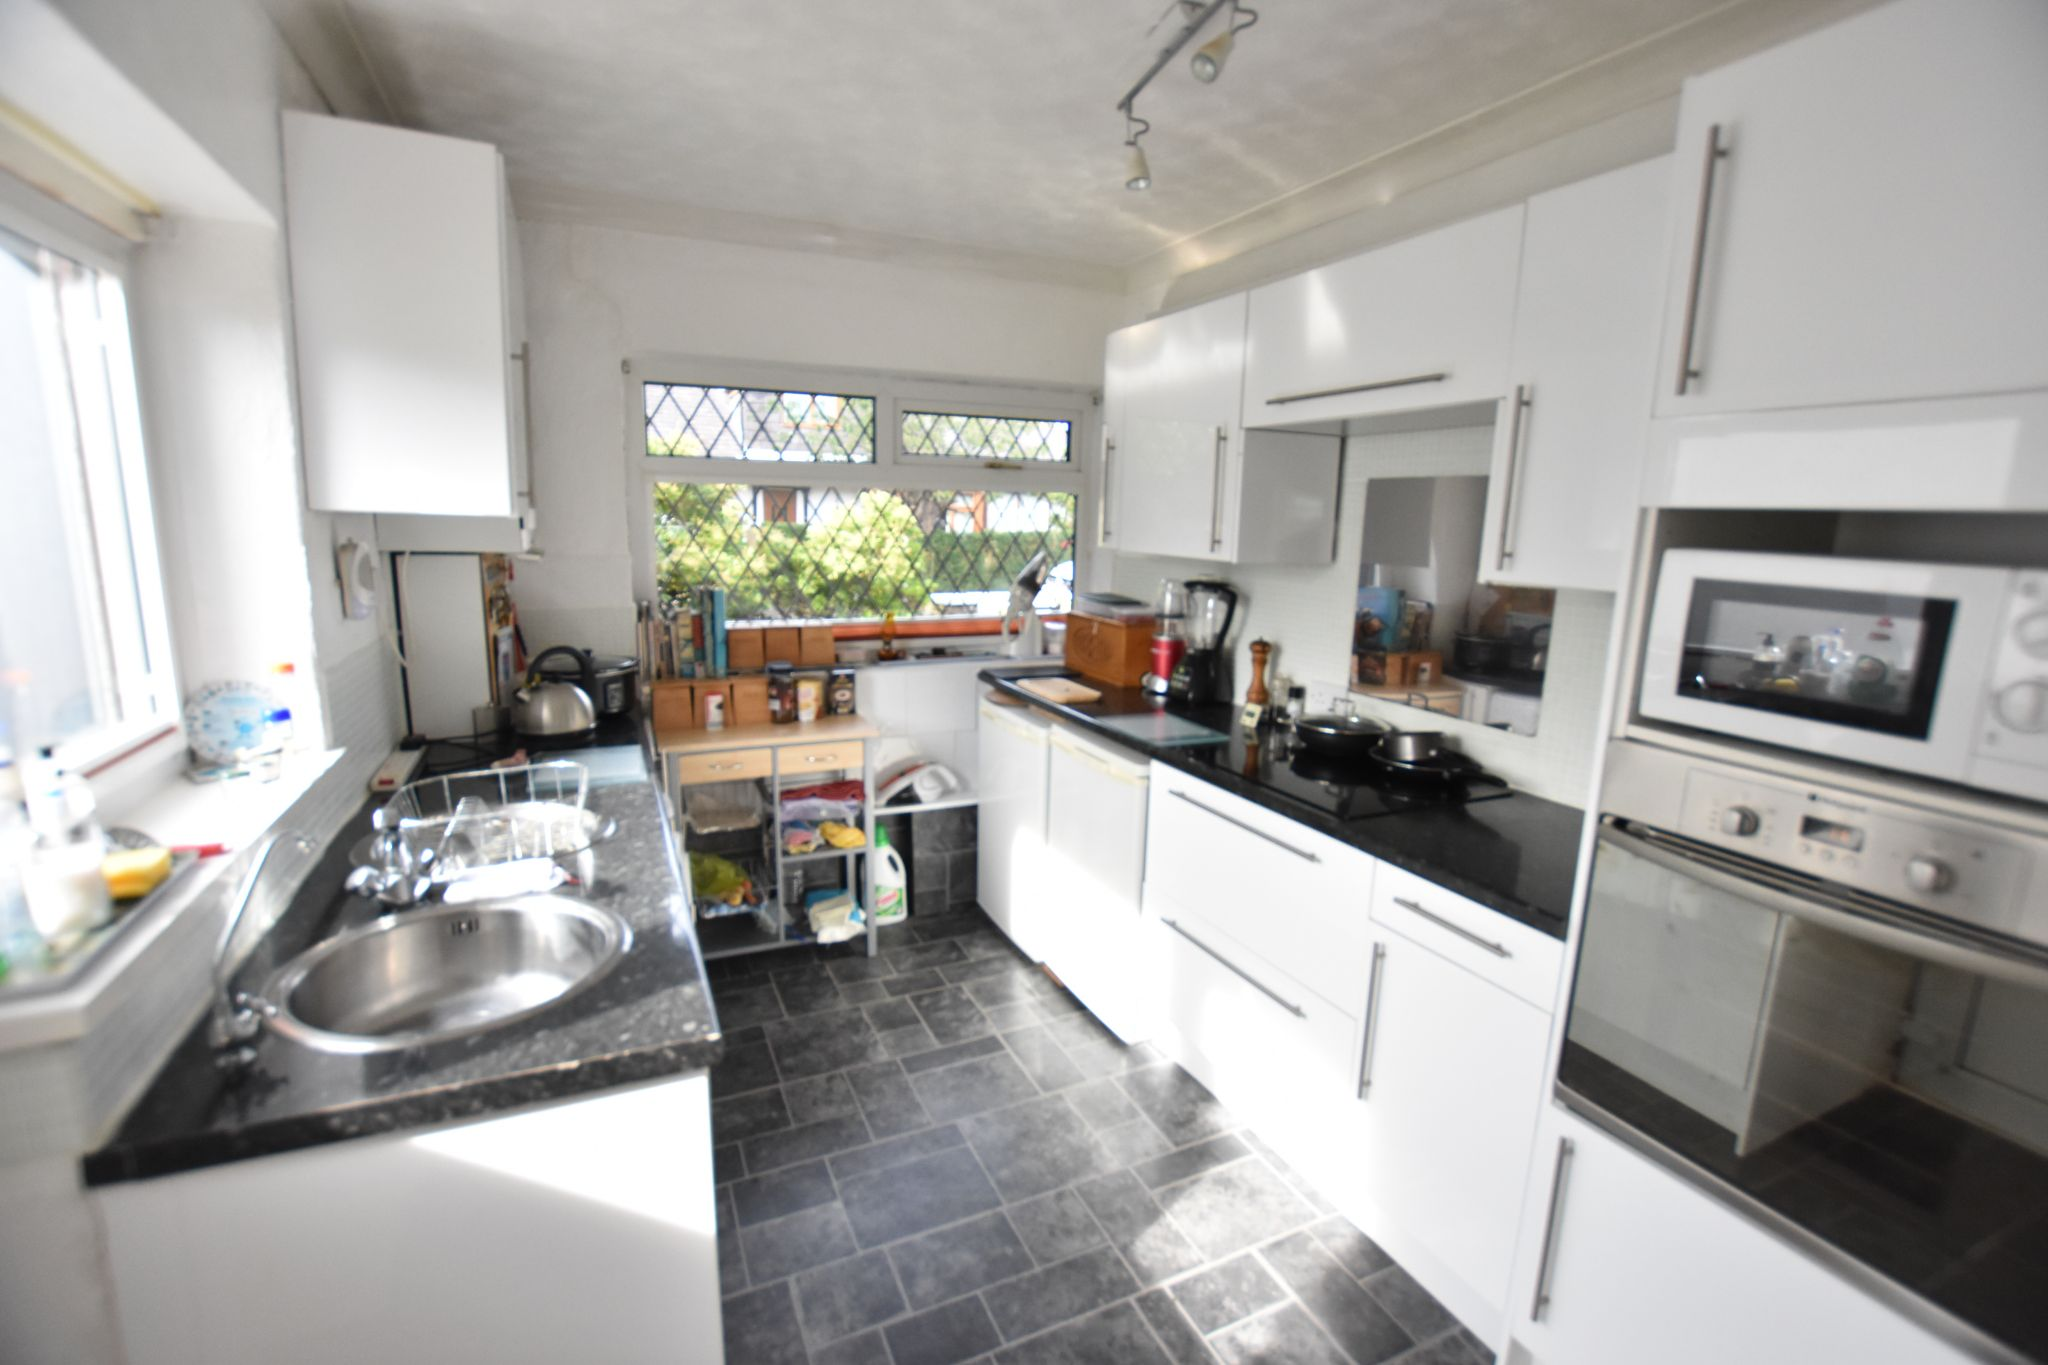 3 bedroom semi-detached bungalow Sold STC in Preston - Kitchen